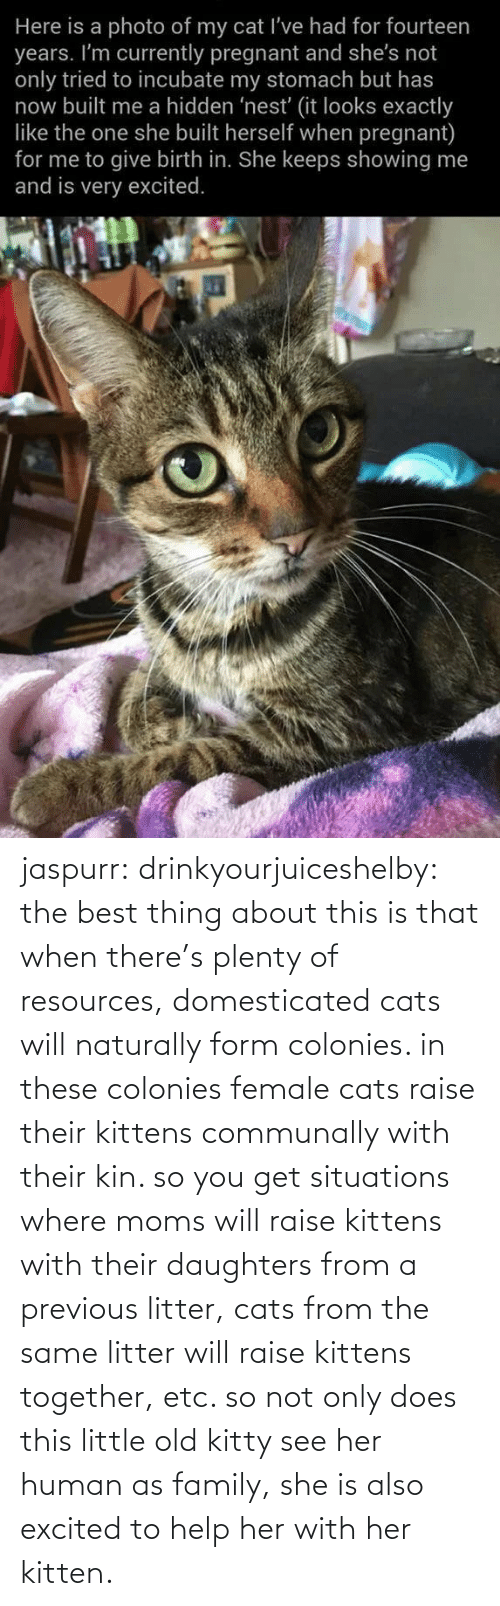 you: jaspurr:  drinkyourjuiceshelby:    the best thing about this is that when there's plenty of resources, domesticated cats will naturally form colonies. in these colonies female cats raise their kittens communally with their kin. so you get situations where moms will raise kittens with their daughters from a previous litter, cats from the same litter will raise kittens together, etc. so not only does this little old kitty see her human as family, she is also excited to help her with her kitten.